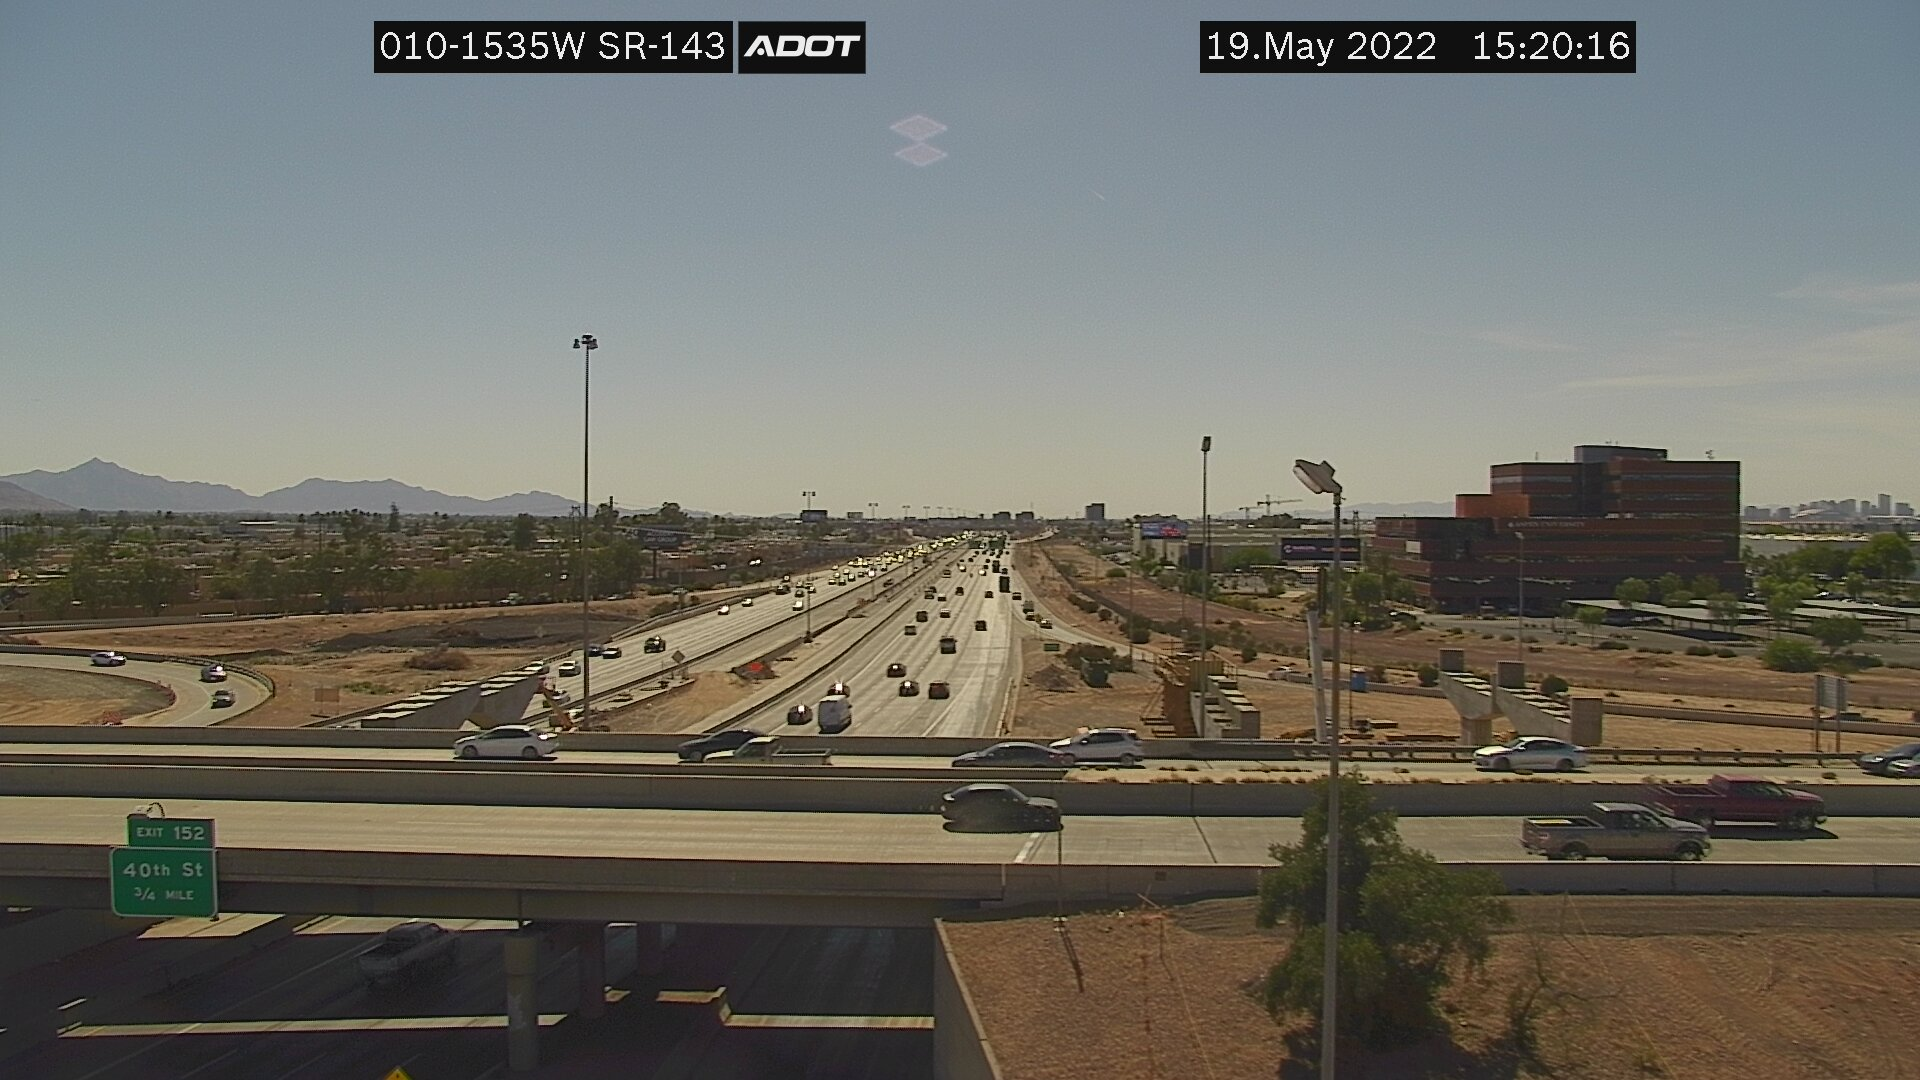 48th St/SR-143 WB (I10) (030) - Phoenix and Arizona